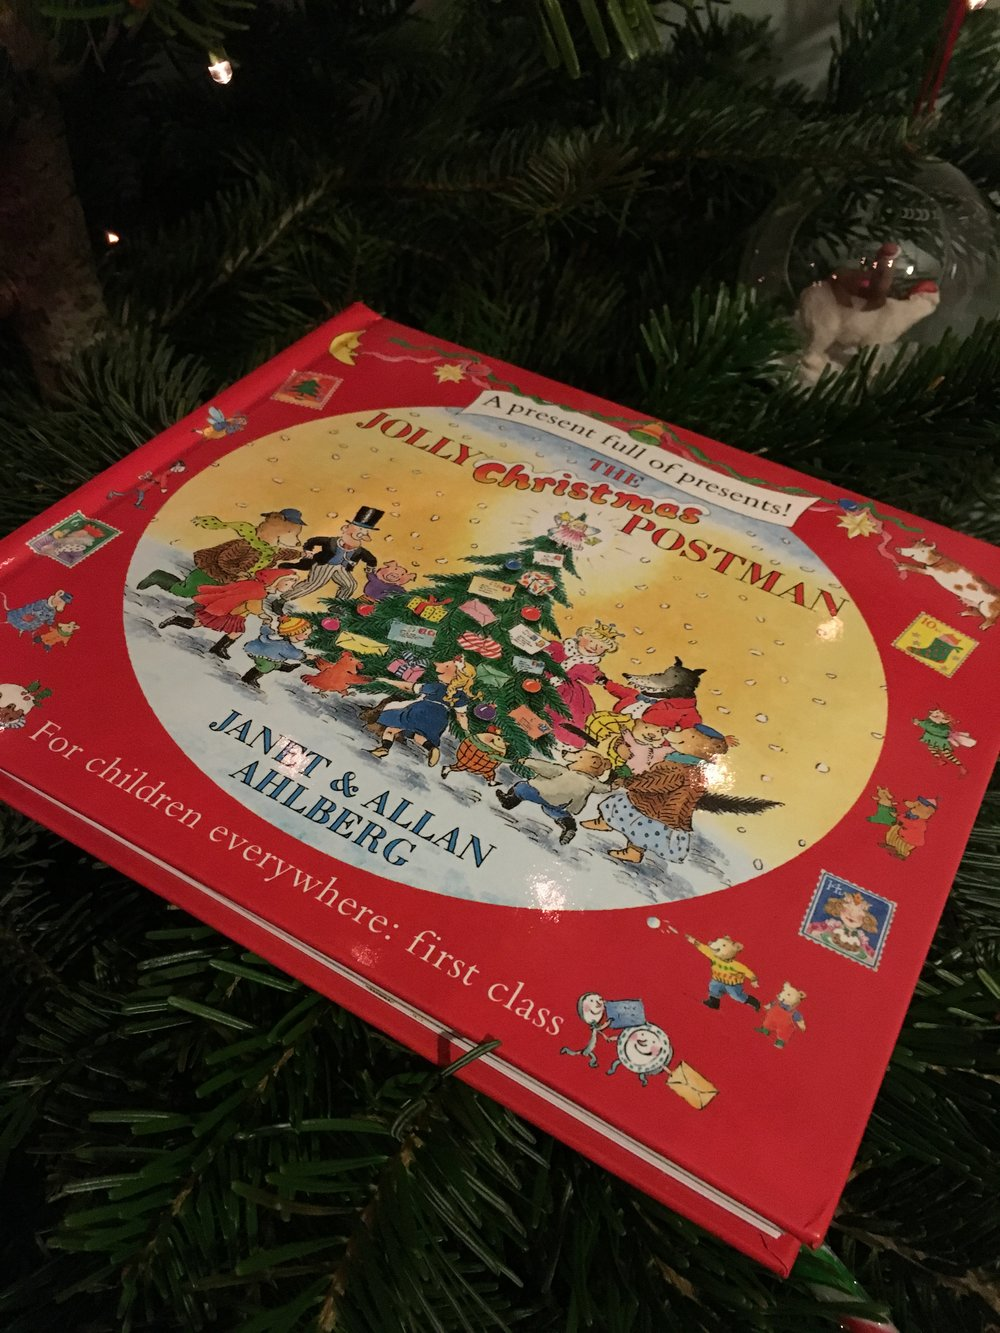 The Jolly Christmas Postman - By Janet & Allan Ahlberg  - This book is lovely, with interactive bits for the children to pull out and look at such as letters and cards. It integrates classic fairytales such as Goldilocks and Jack & the Beanstalk which many children will recognise.